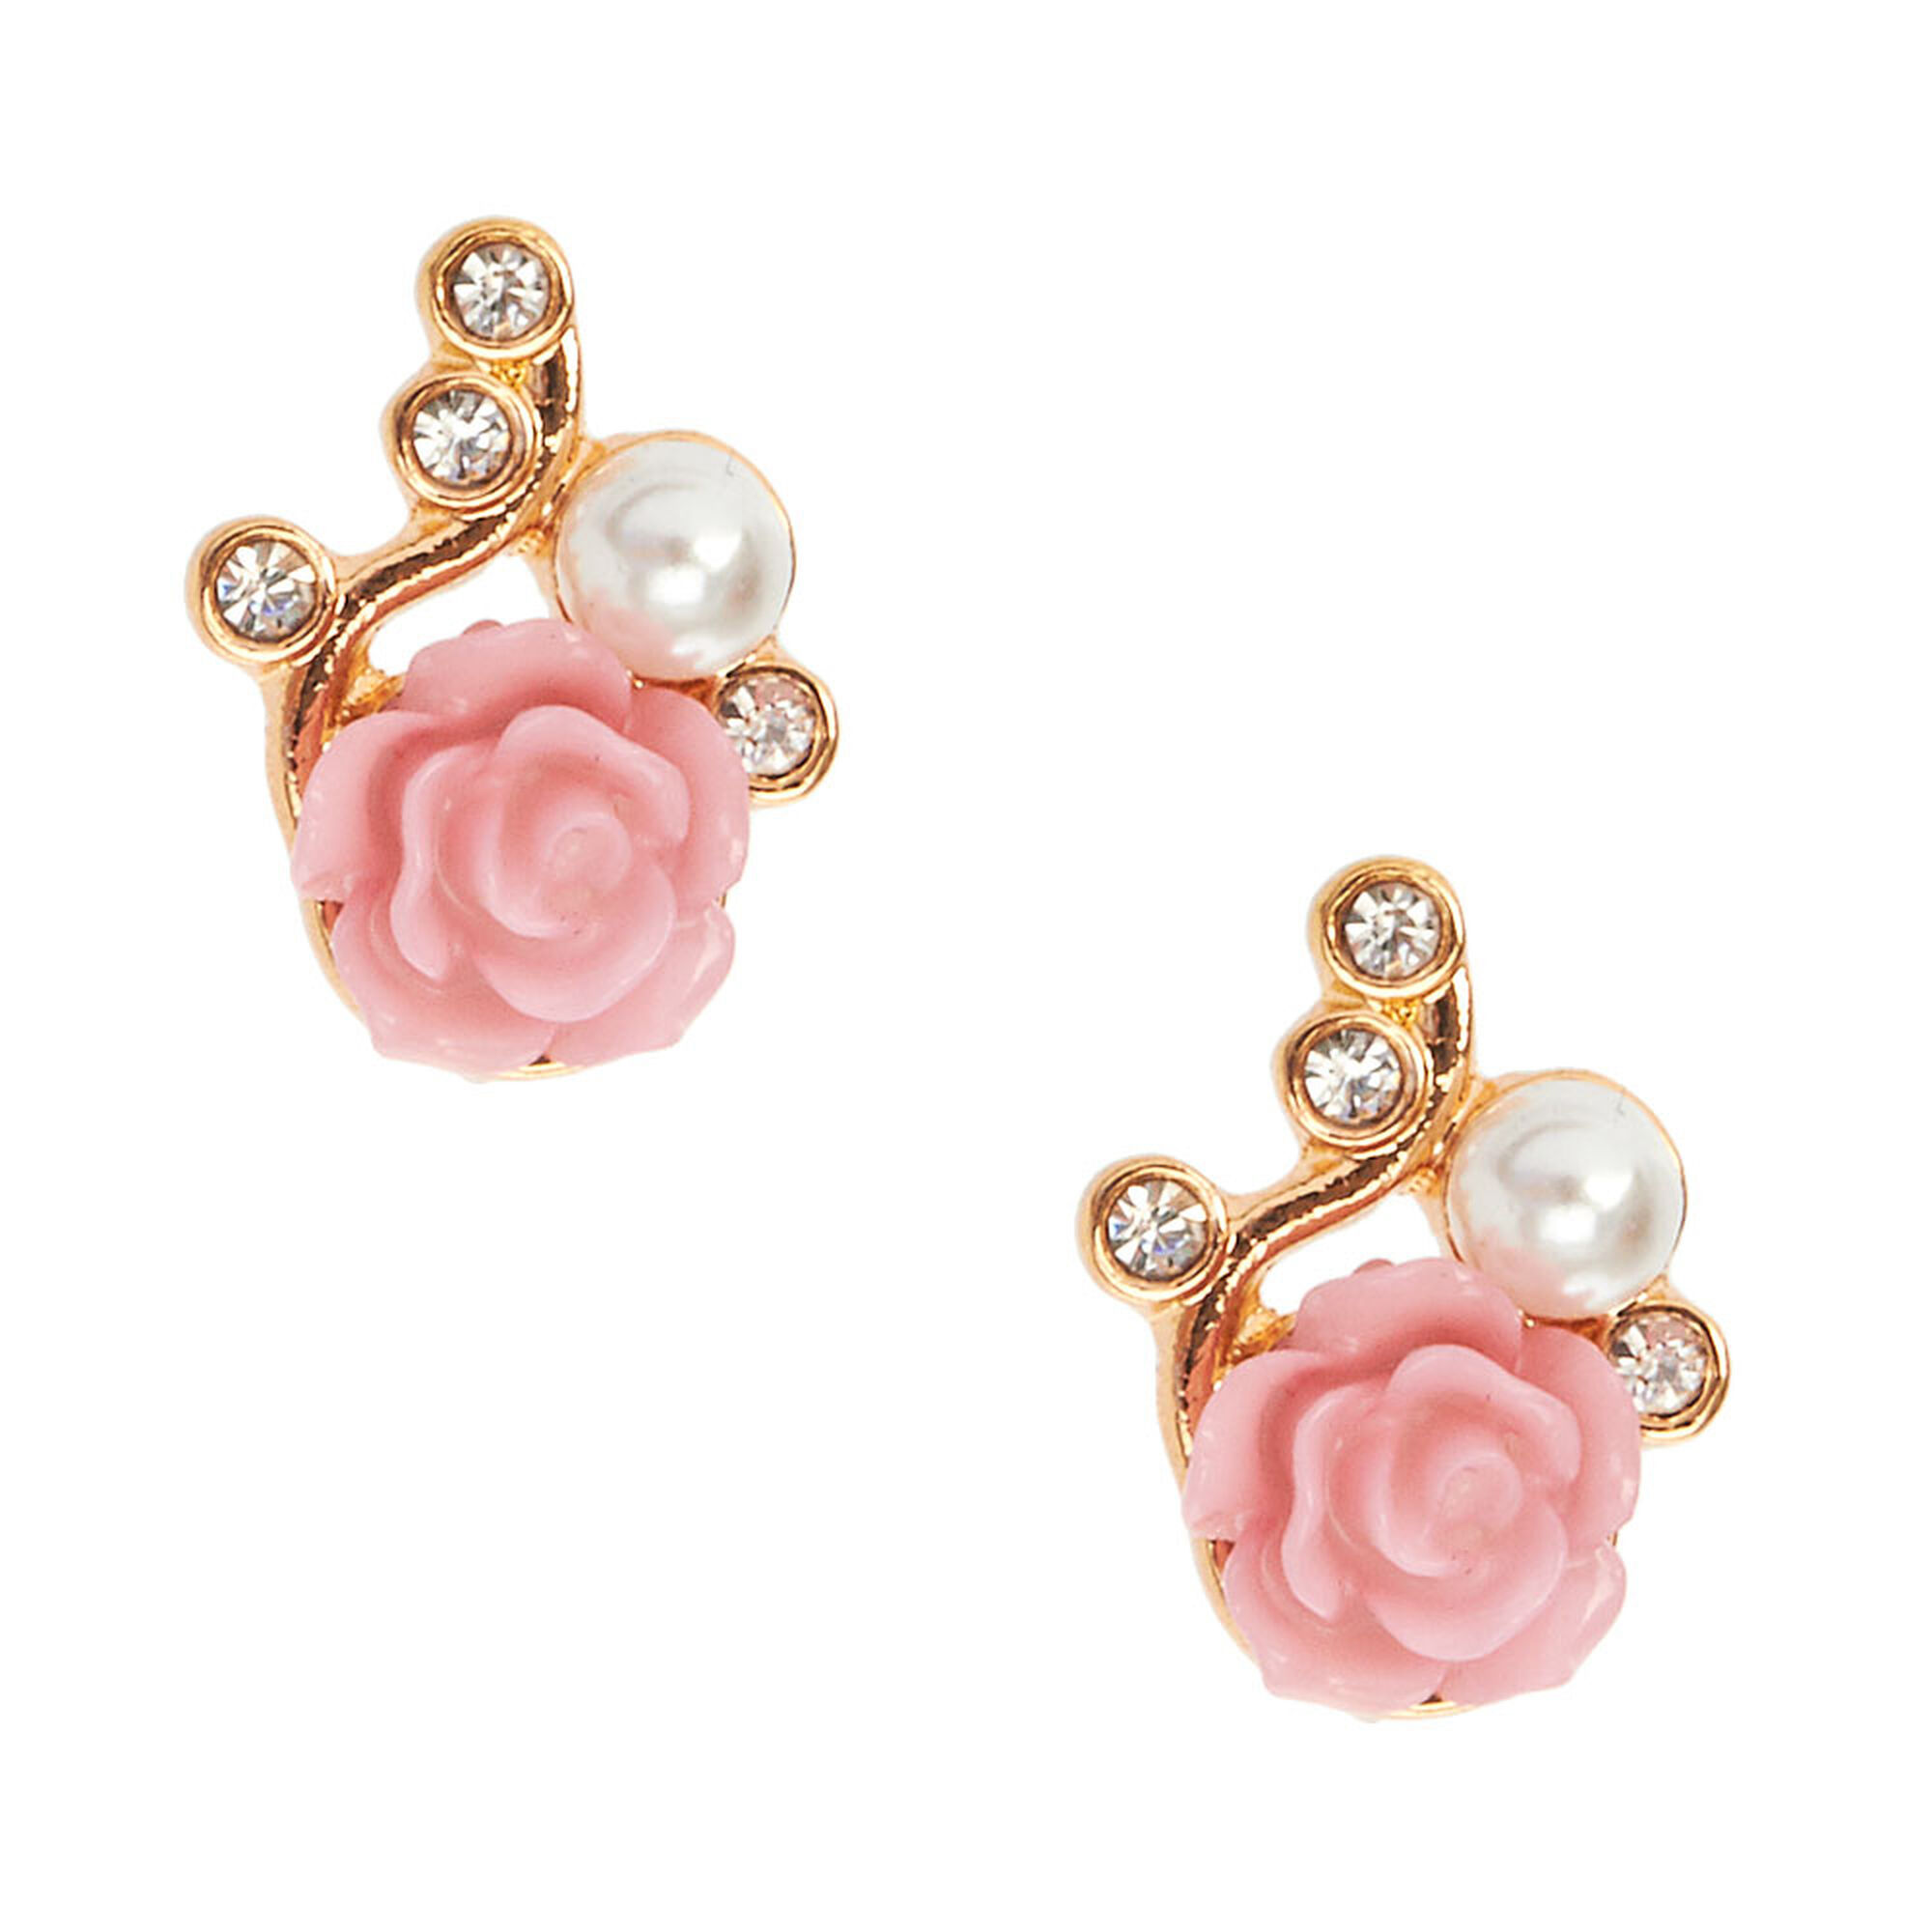 aaaa earrings silver jewelry p stud cultured pearl pink by quality freshwater with sterling wiw